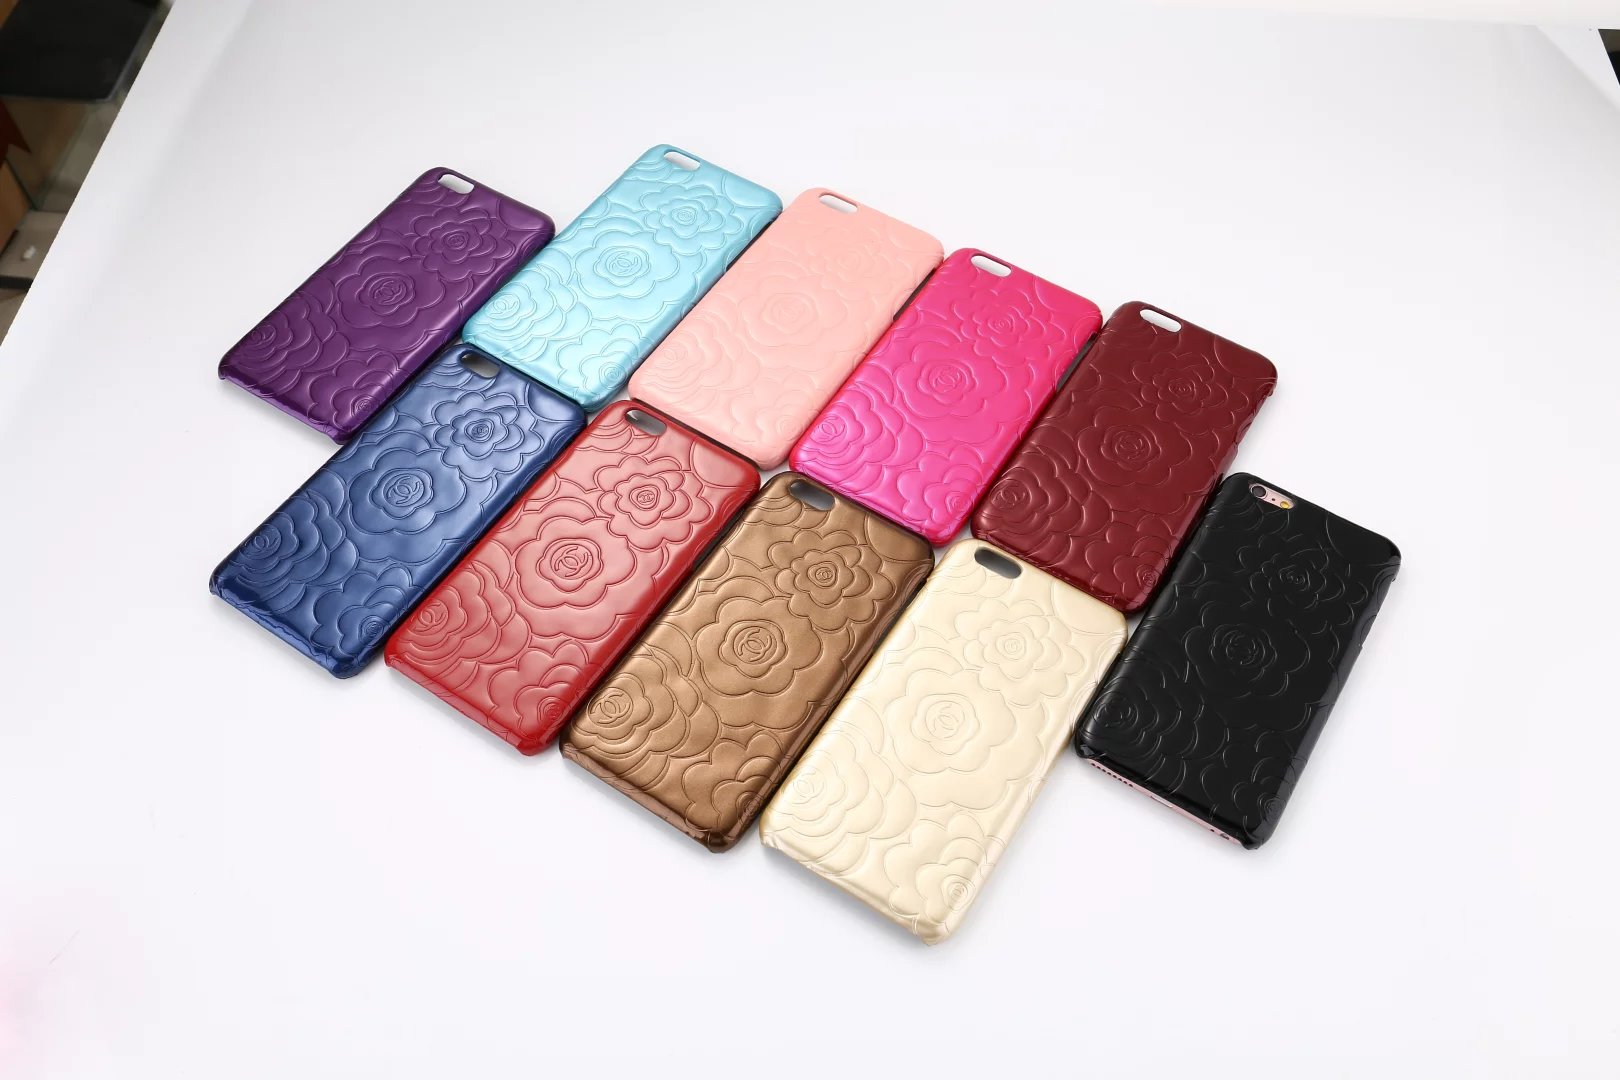 iphone 6 case cover iphone 6 cases for sale fashion iphone6 case i 6 phone case iphone 6 sticker case create your own iphone 6 case samsung iphone 6 aluminum case phone cases for the iphone 6 the upcoming iphone